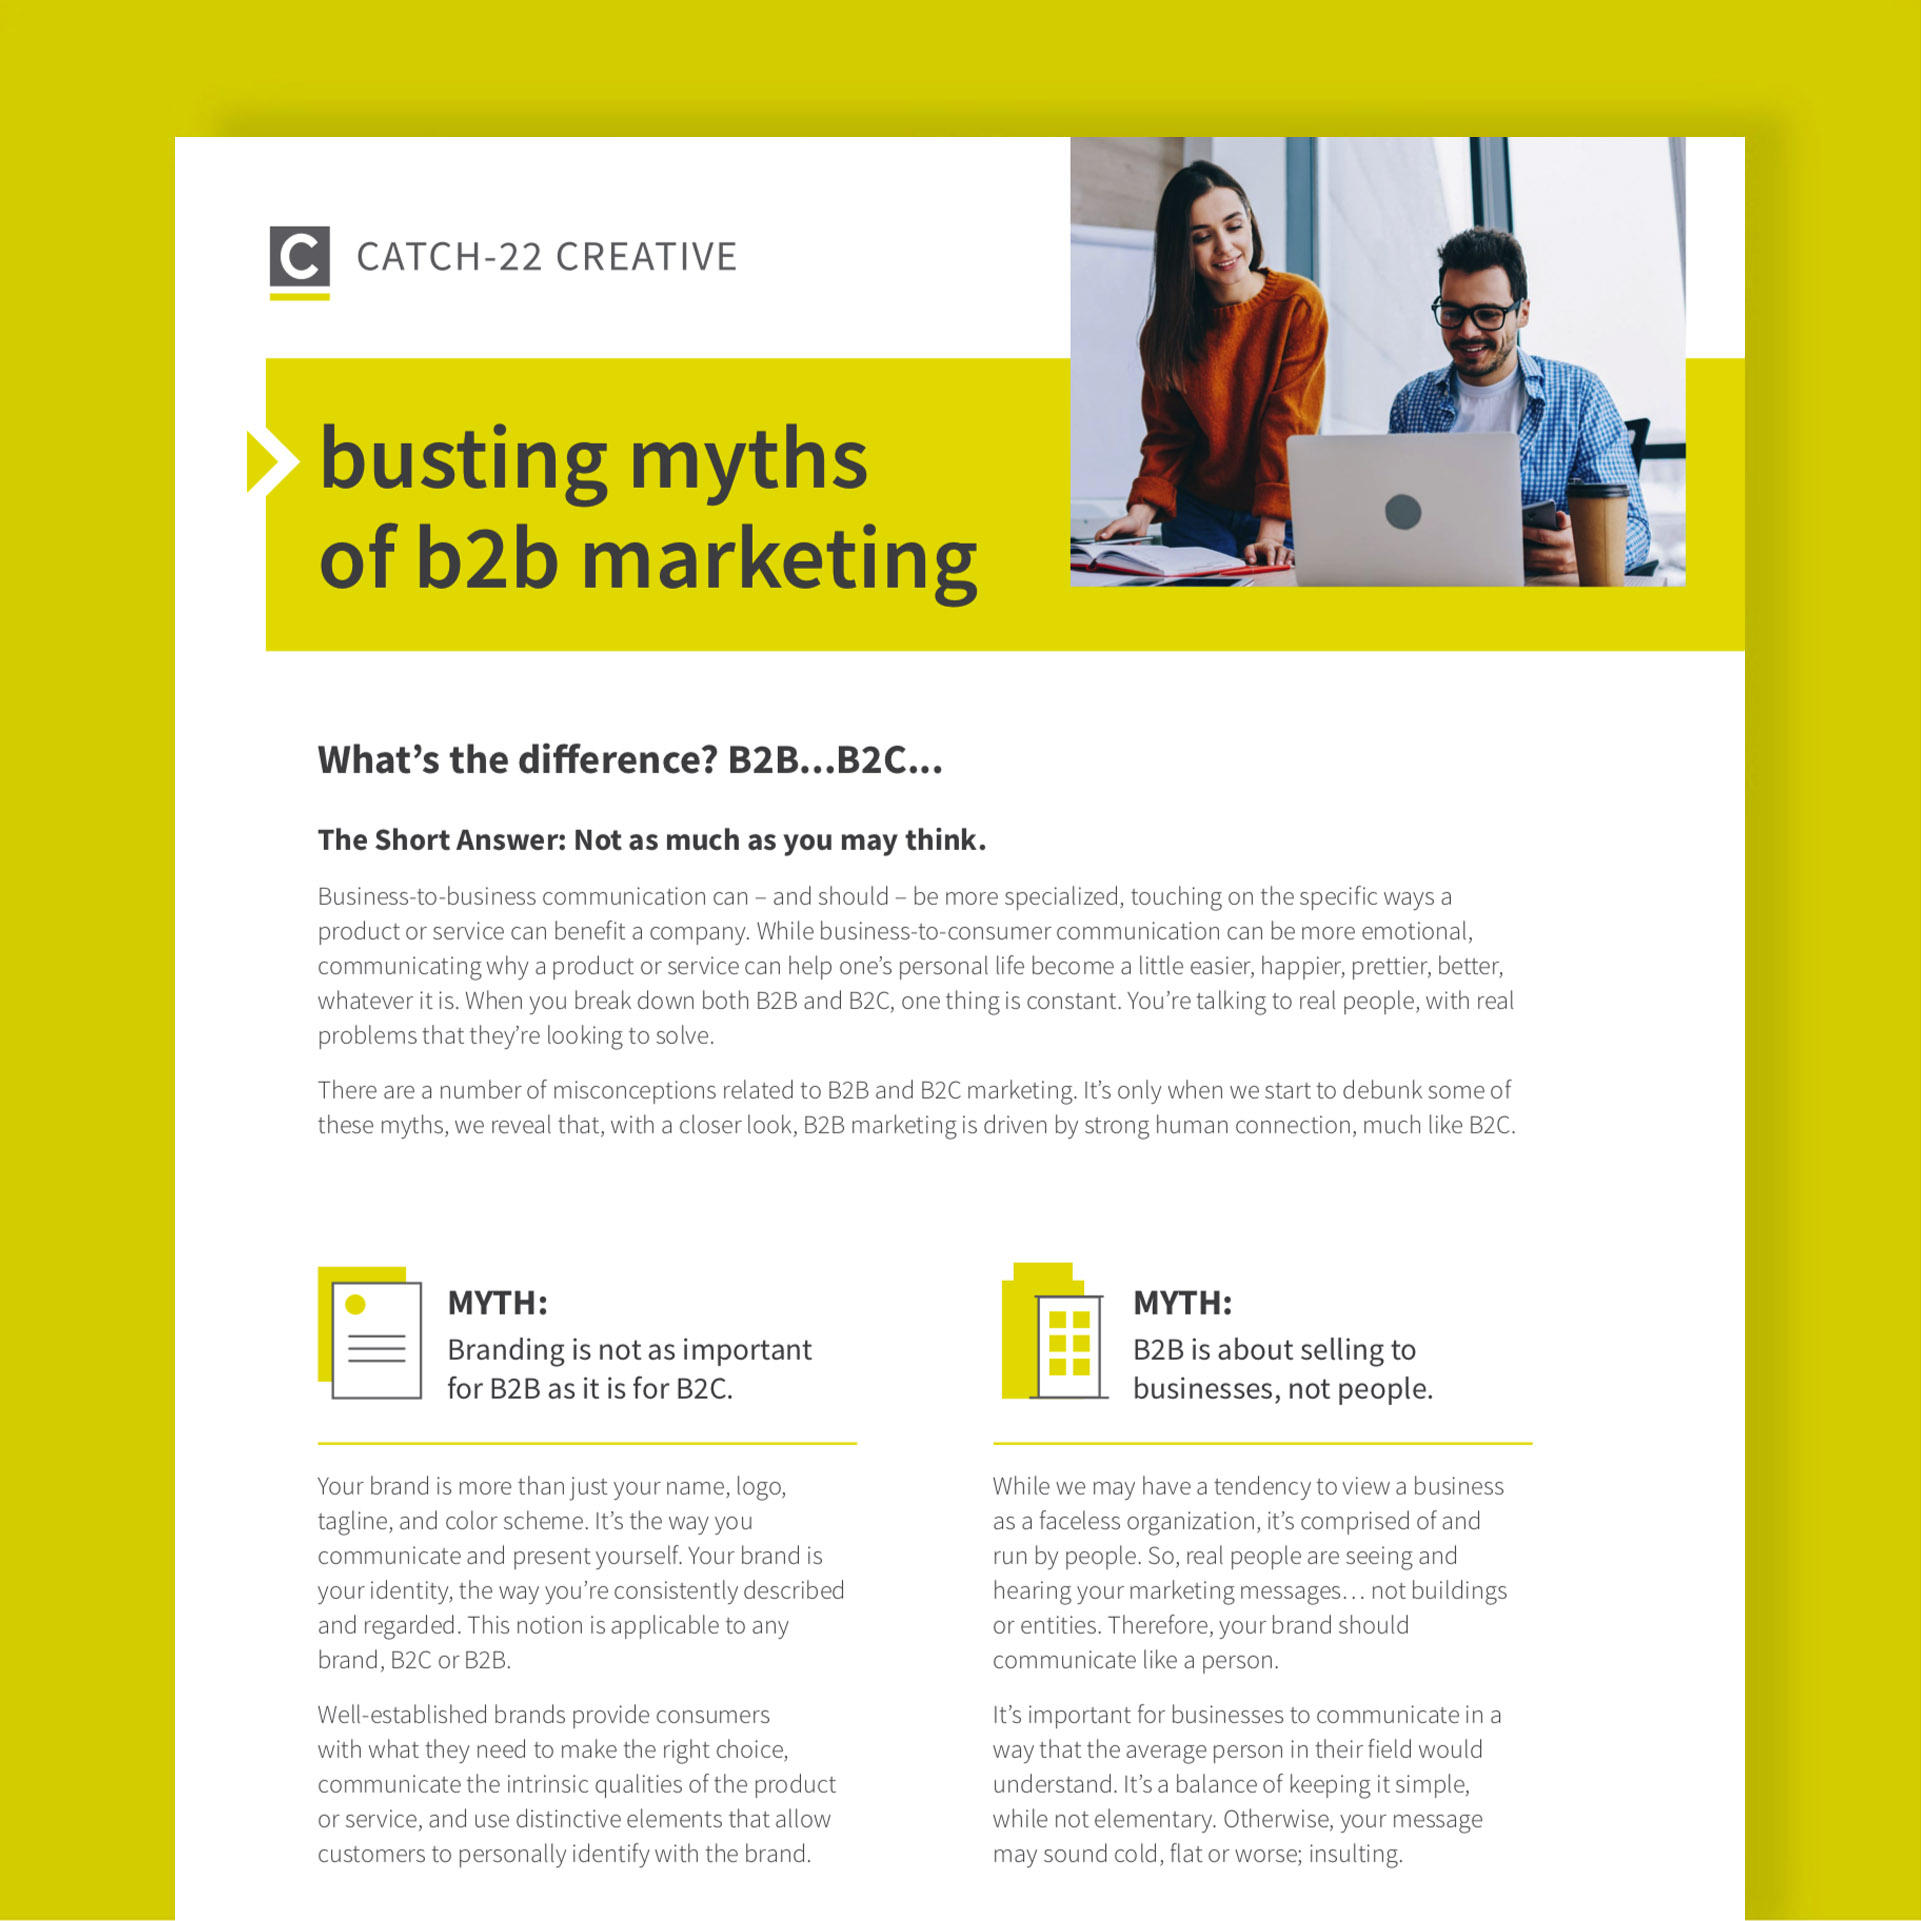 busting myths of b2b marketing